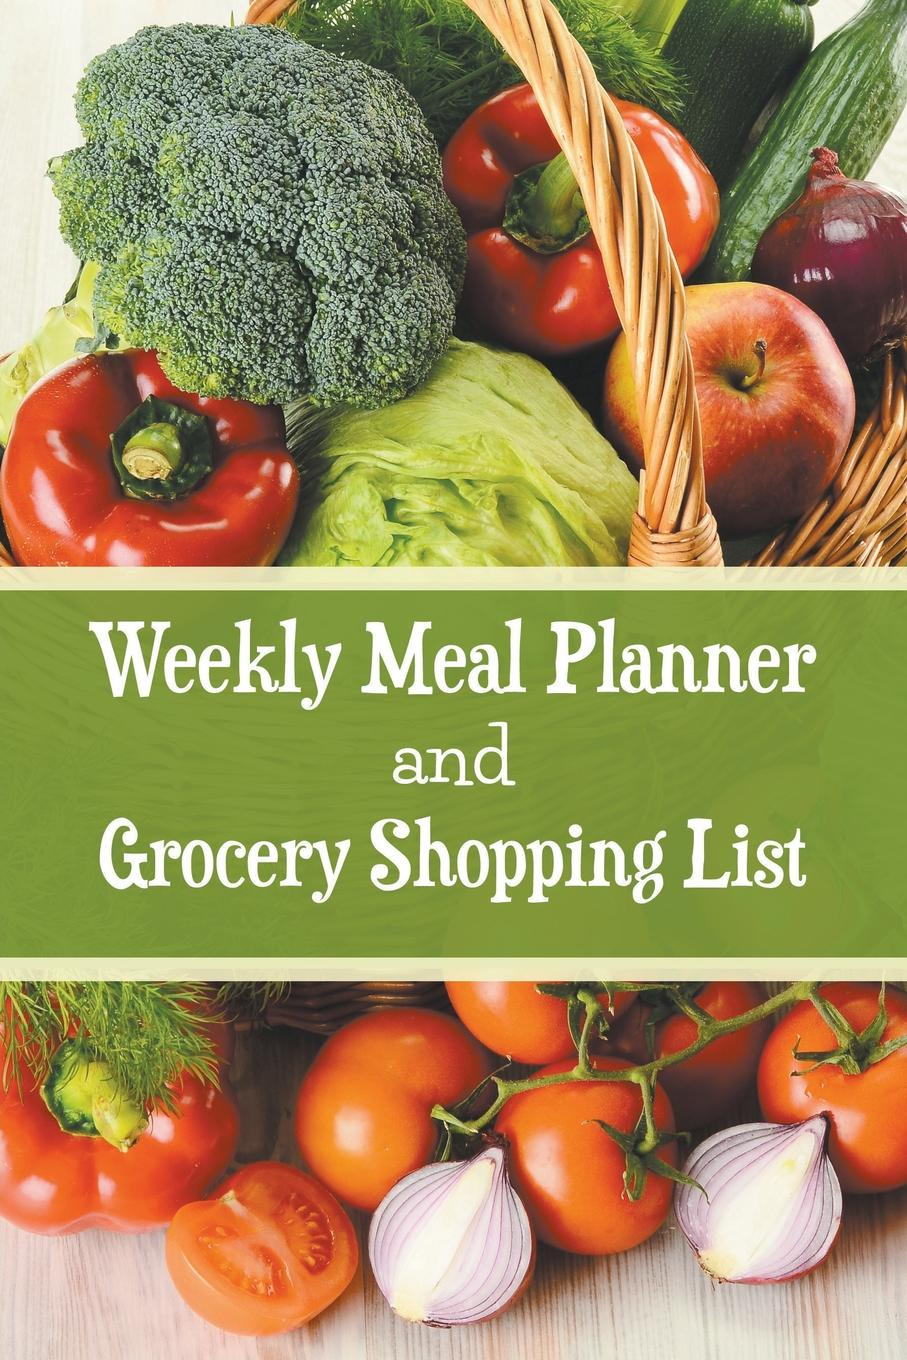 Karen S. Roberts Weekly Meal Planner and Grocery Shopping List siobhan vivian the list